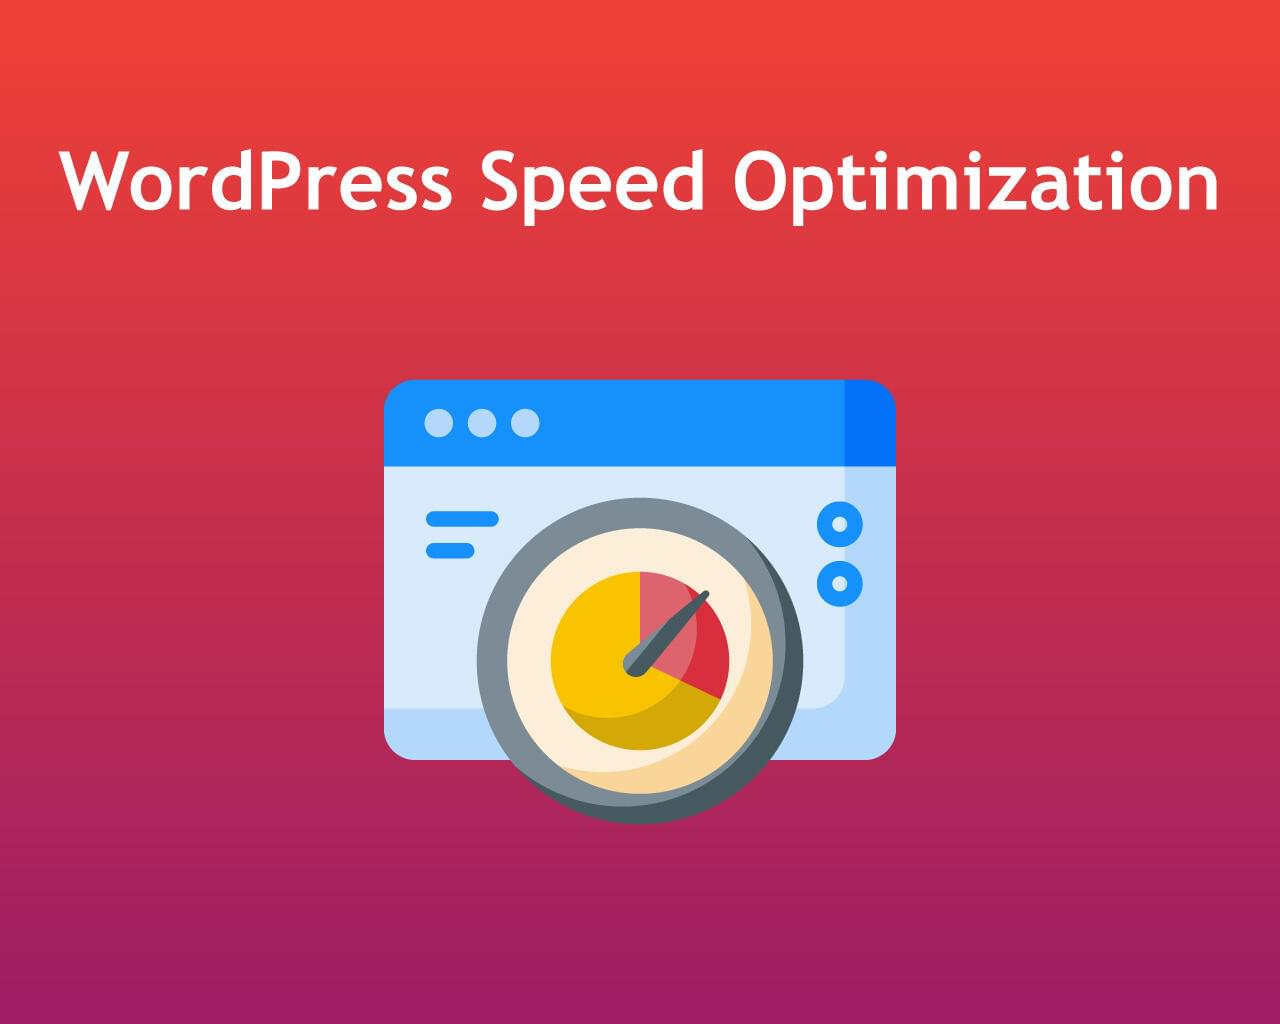 WordPress Speed Optimization Service by jitendra-sahu - 117816